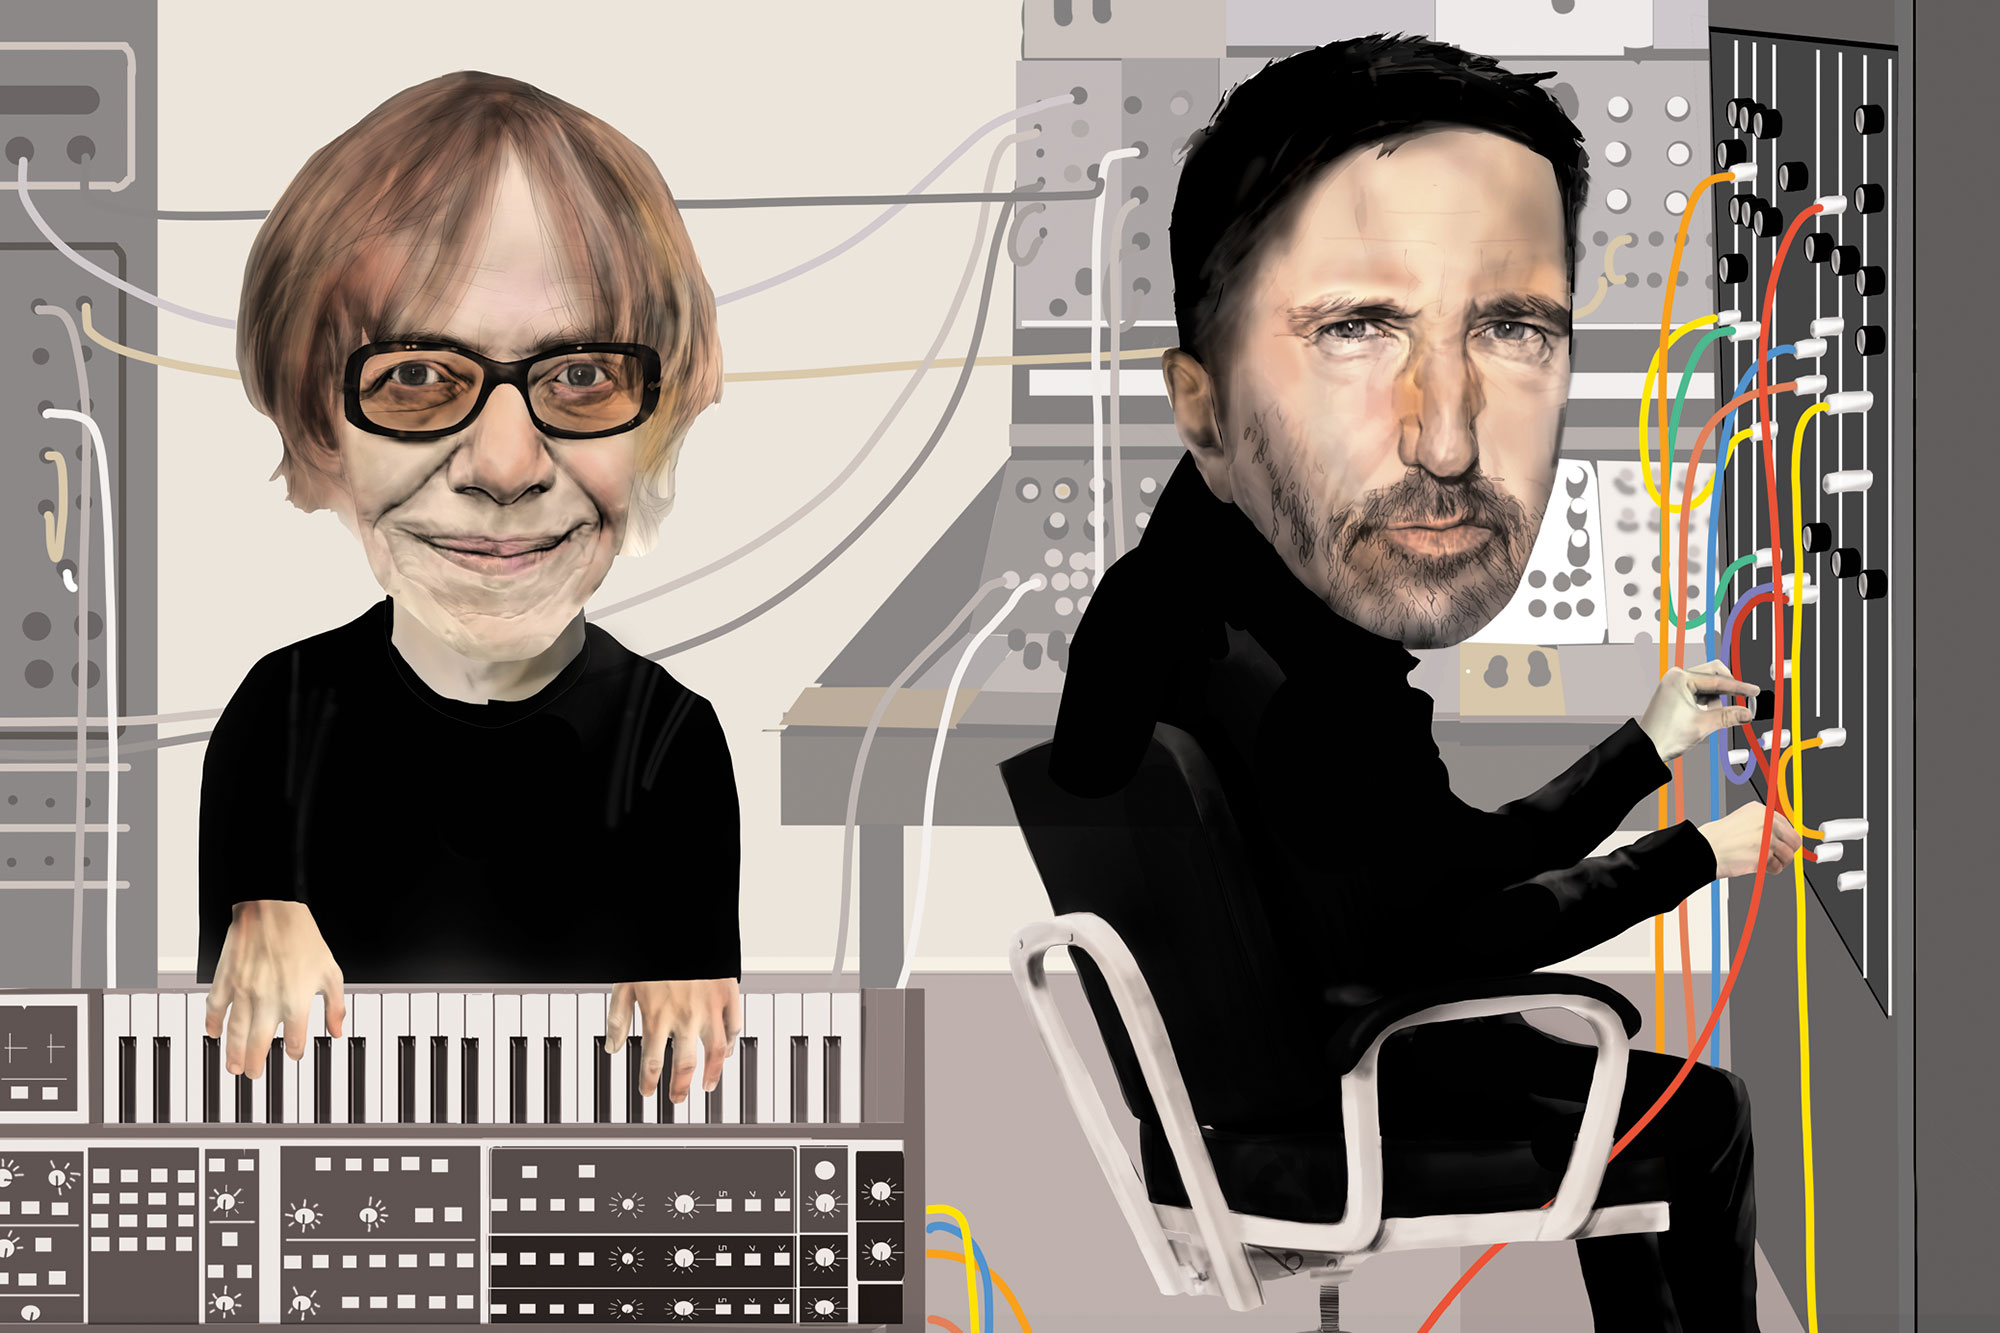 Danny Elfman and Trent Reznor illo from October 2021 issue